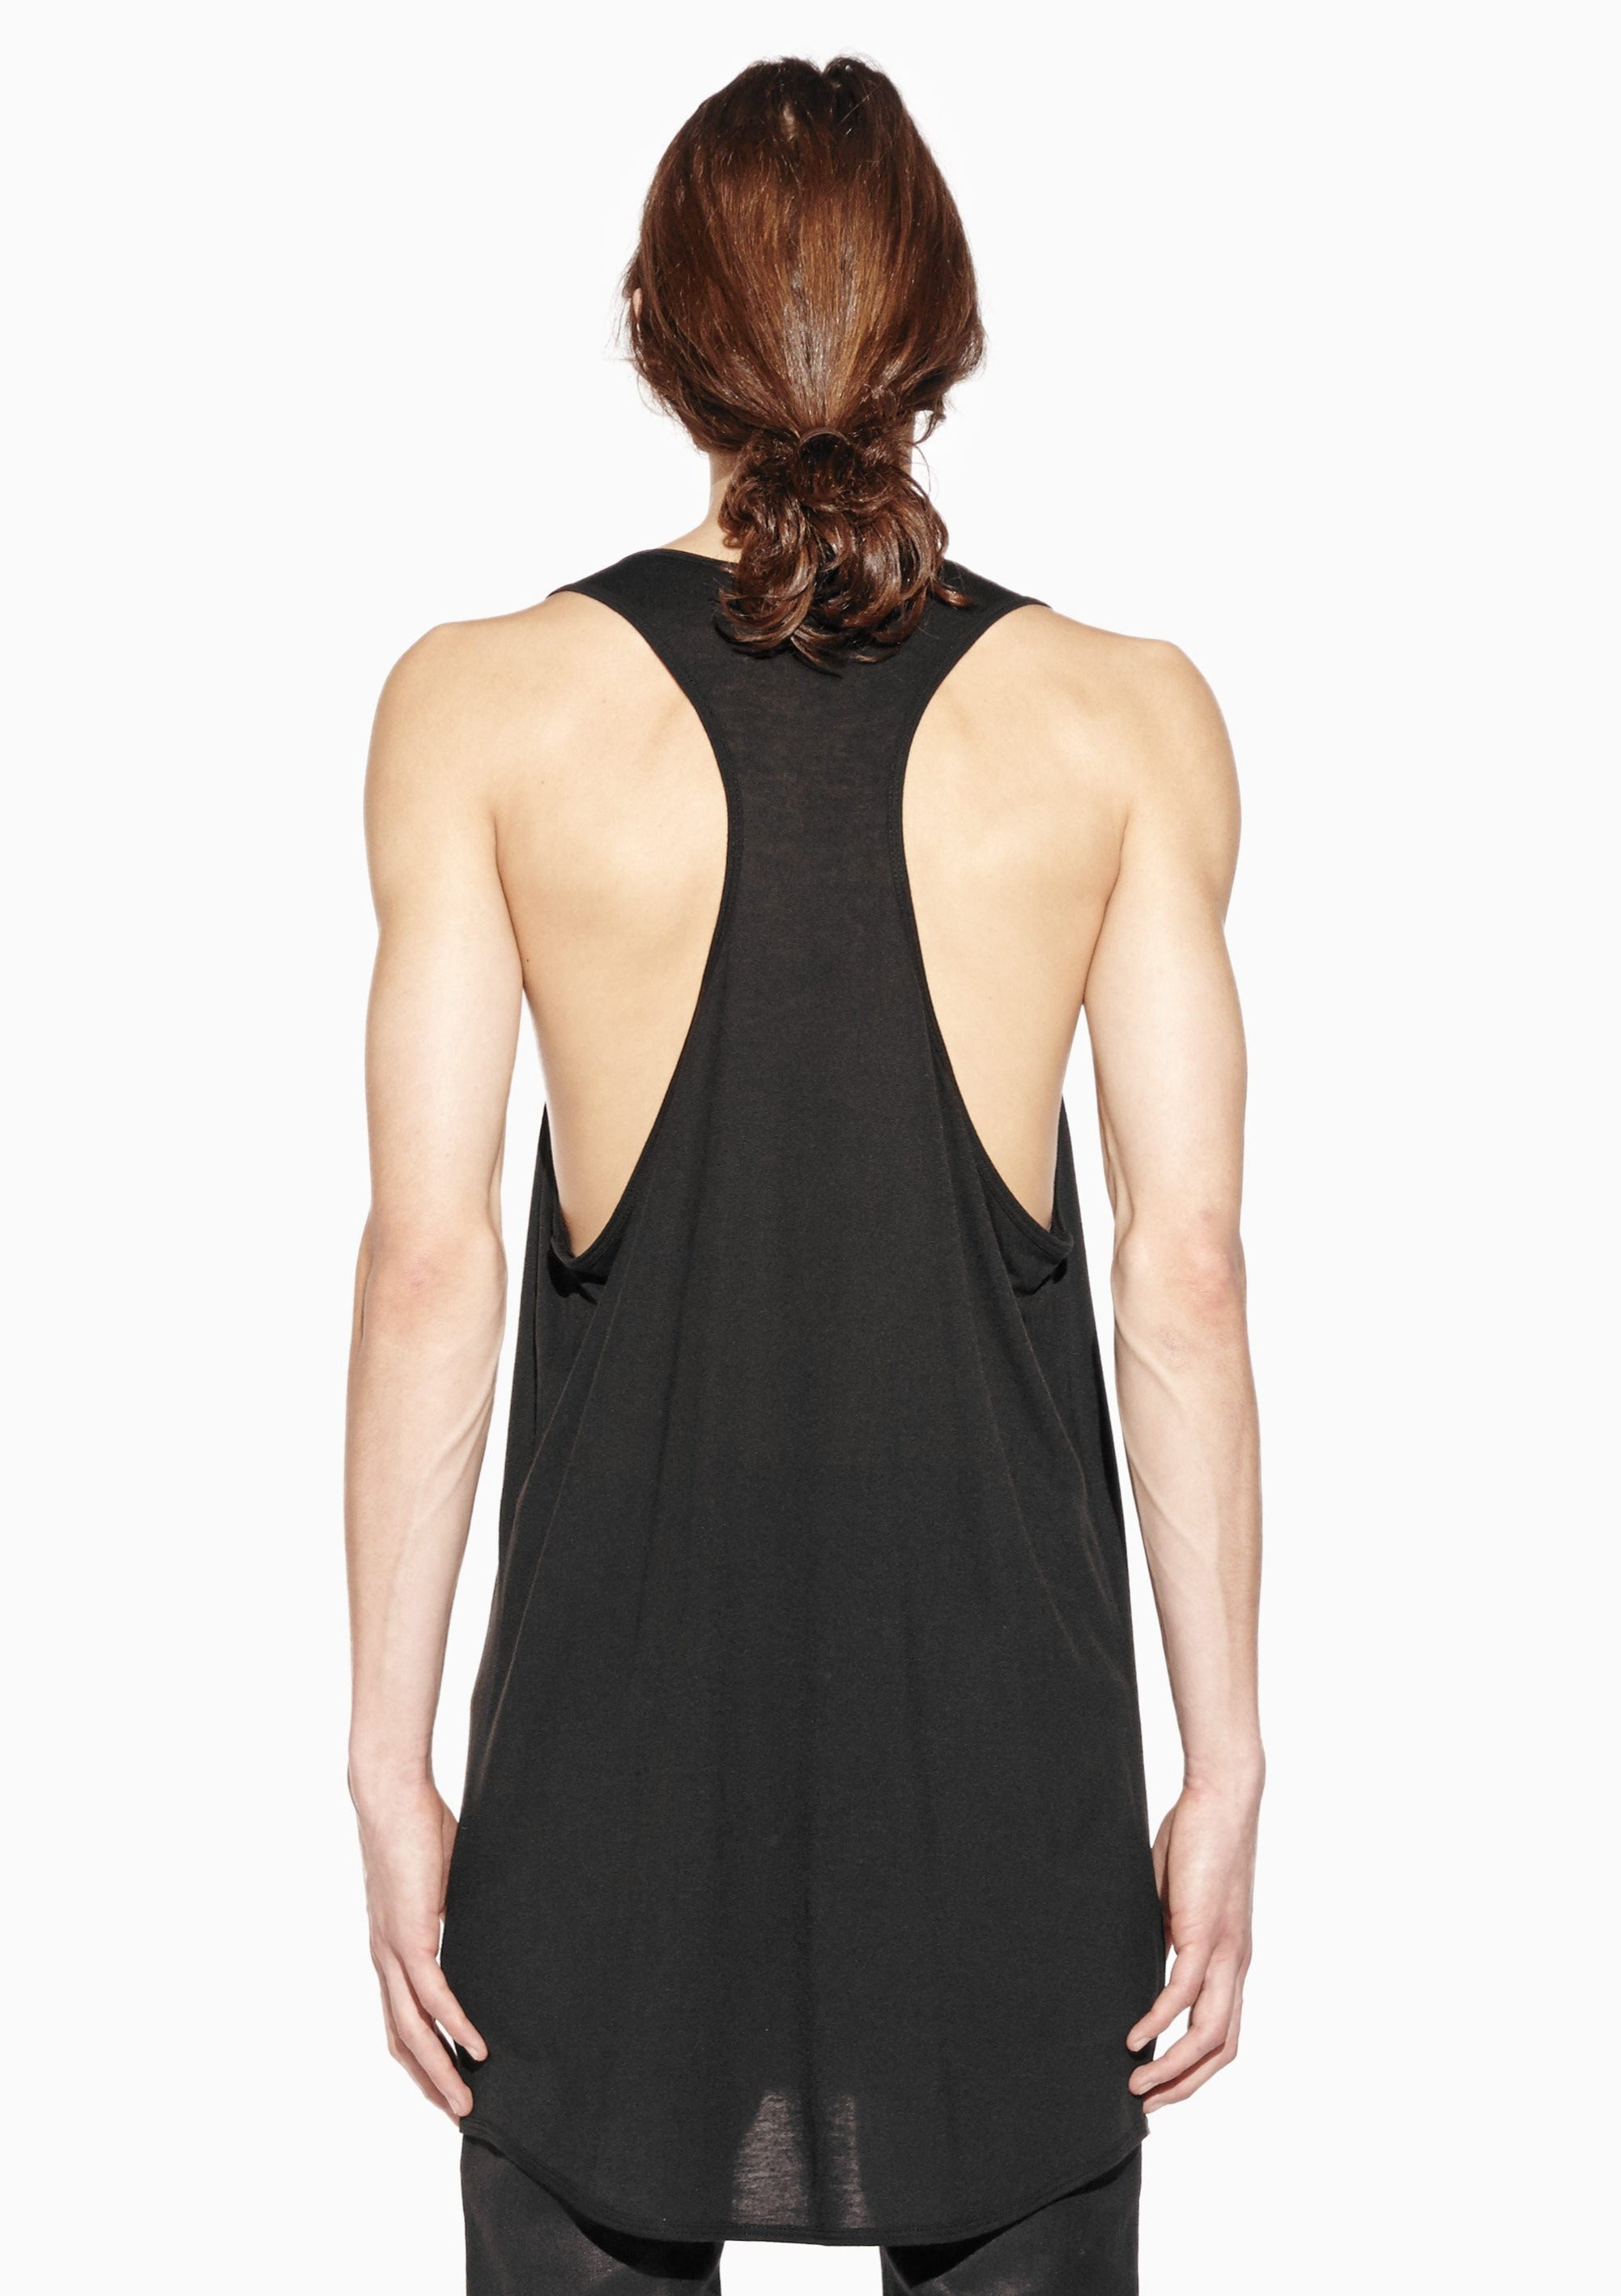 N2 TANK TOP Tencel Jersey